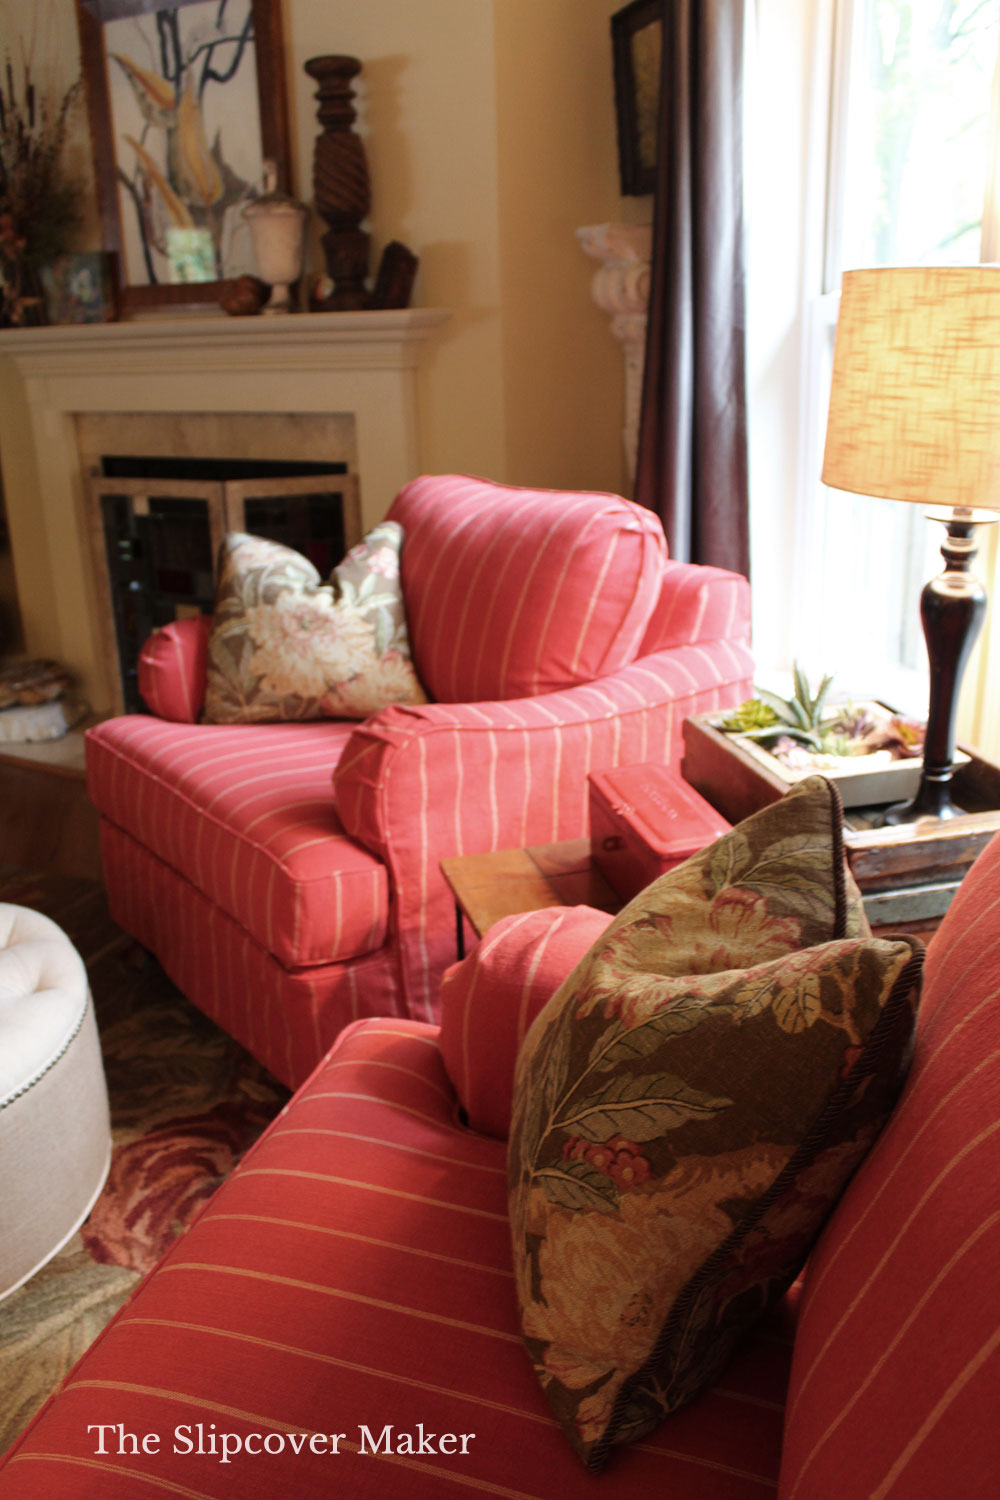 Fabric Pattern Mixing with Slipcovers